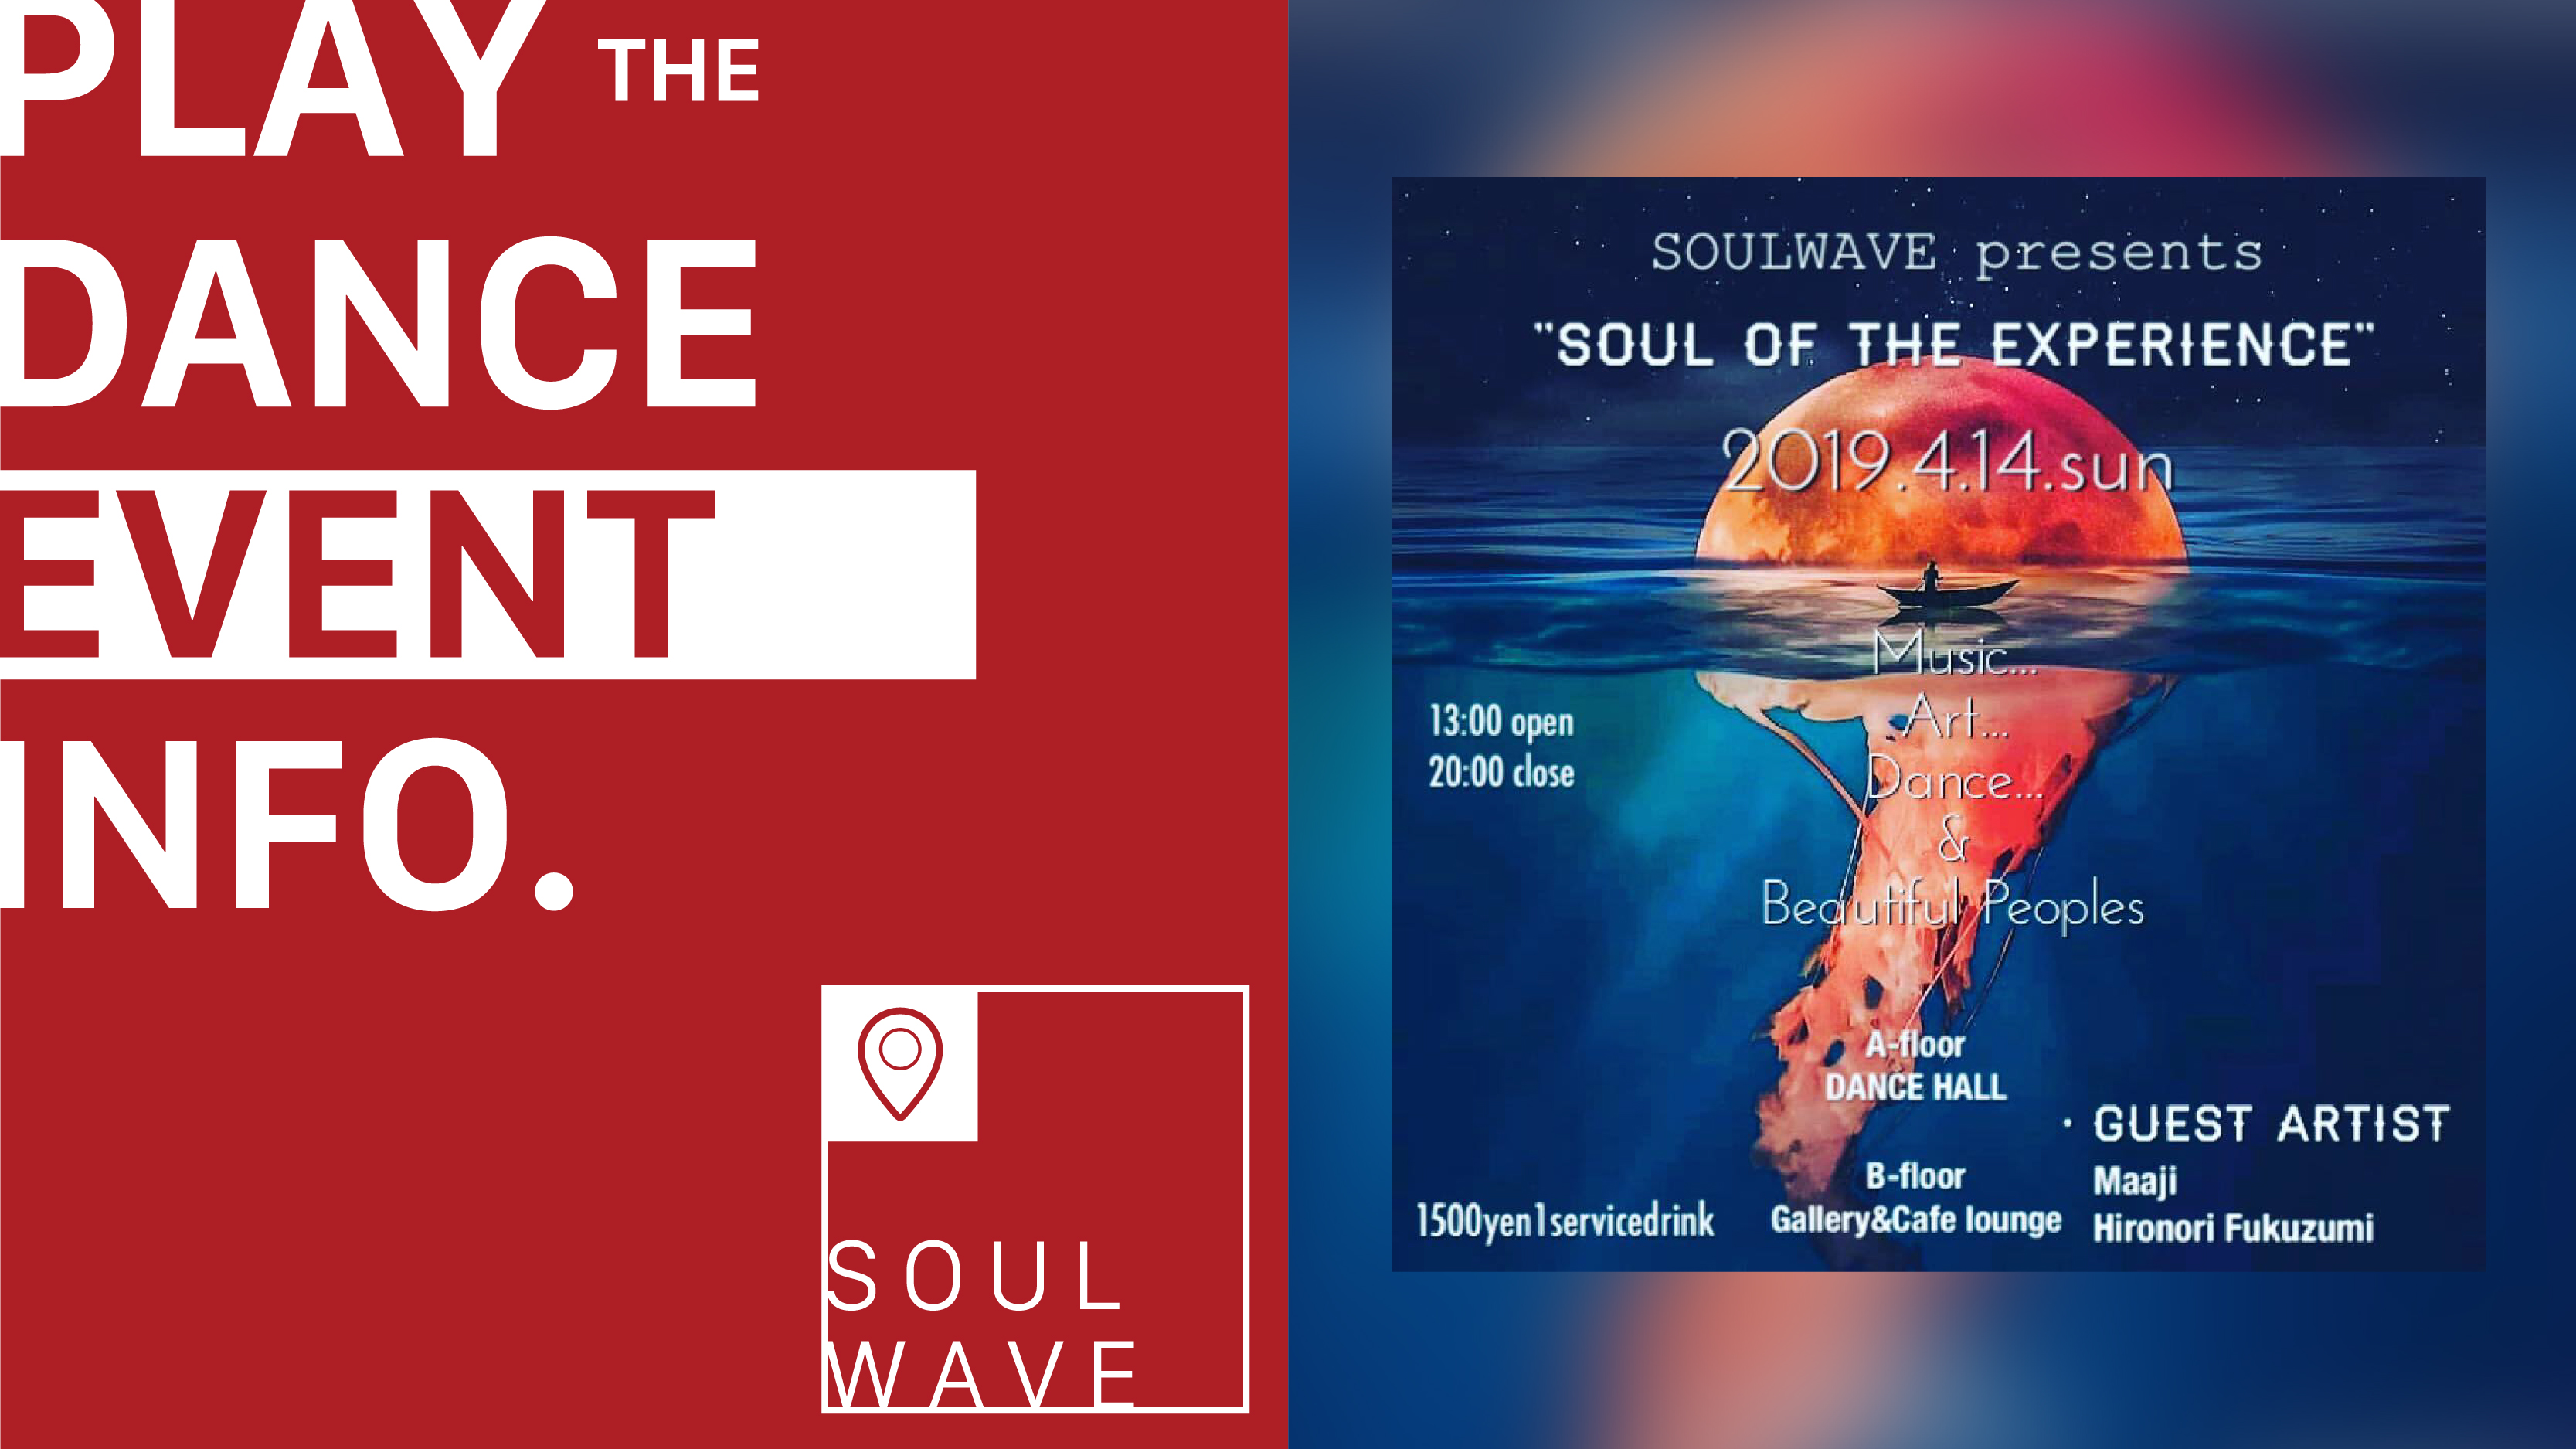 SOUL OF THE EXPERIENCE